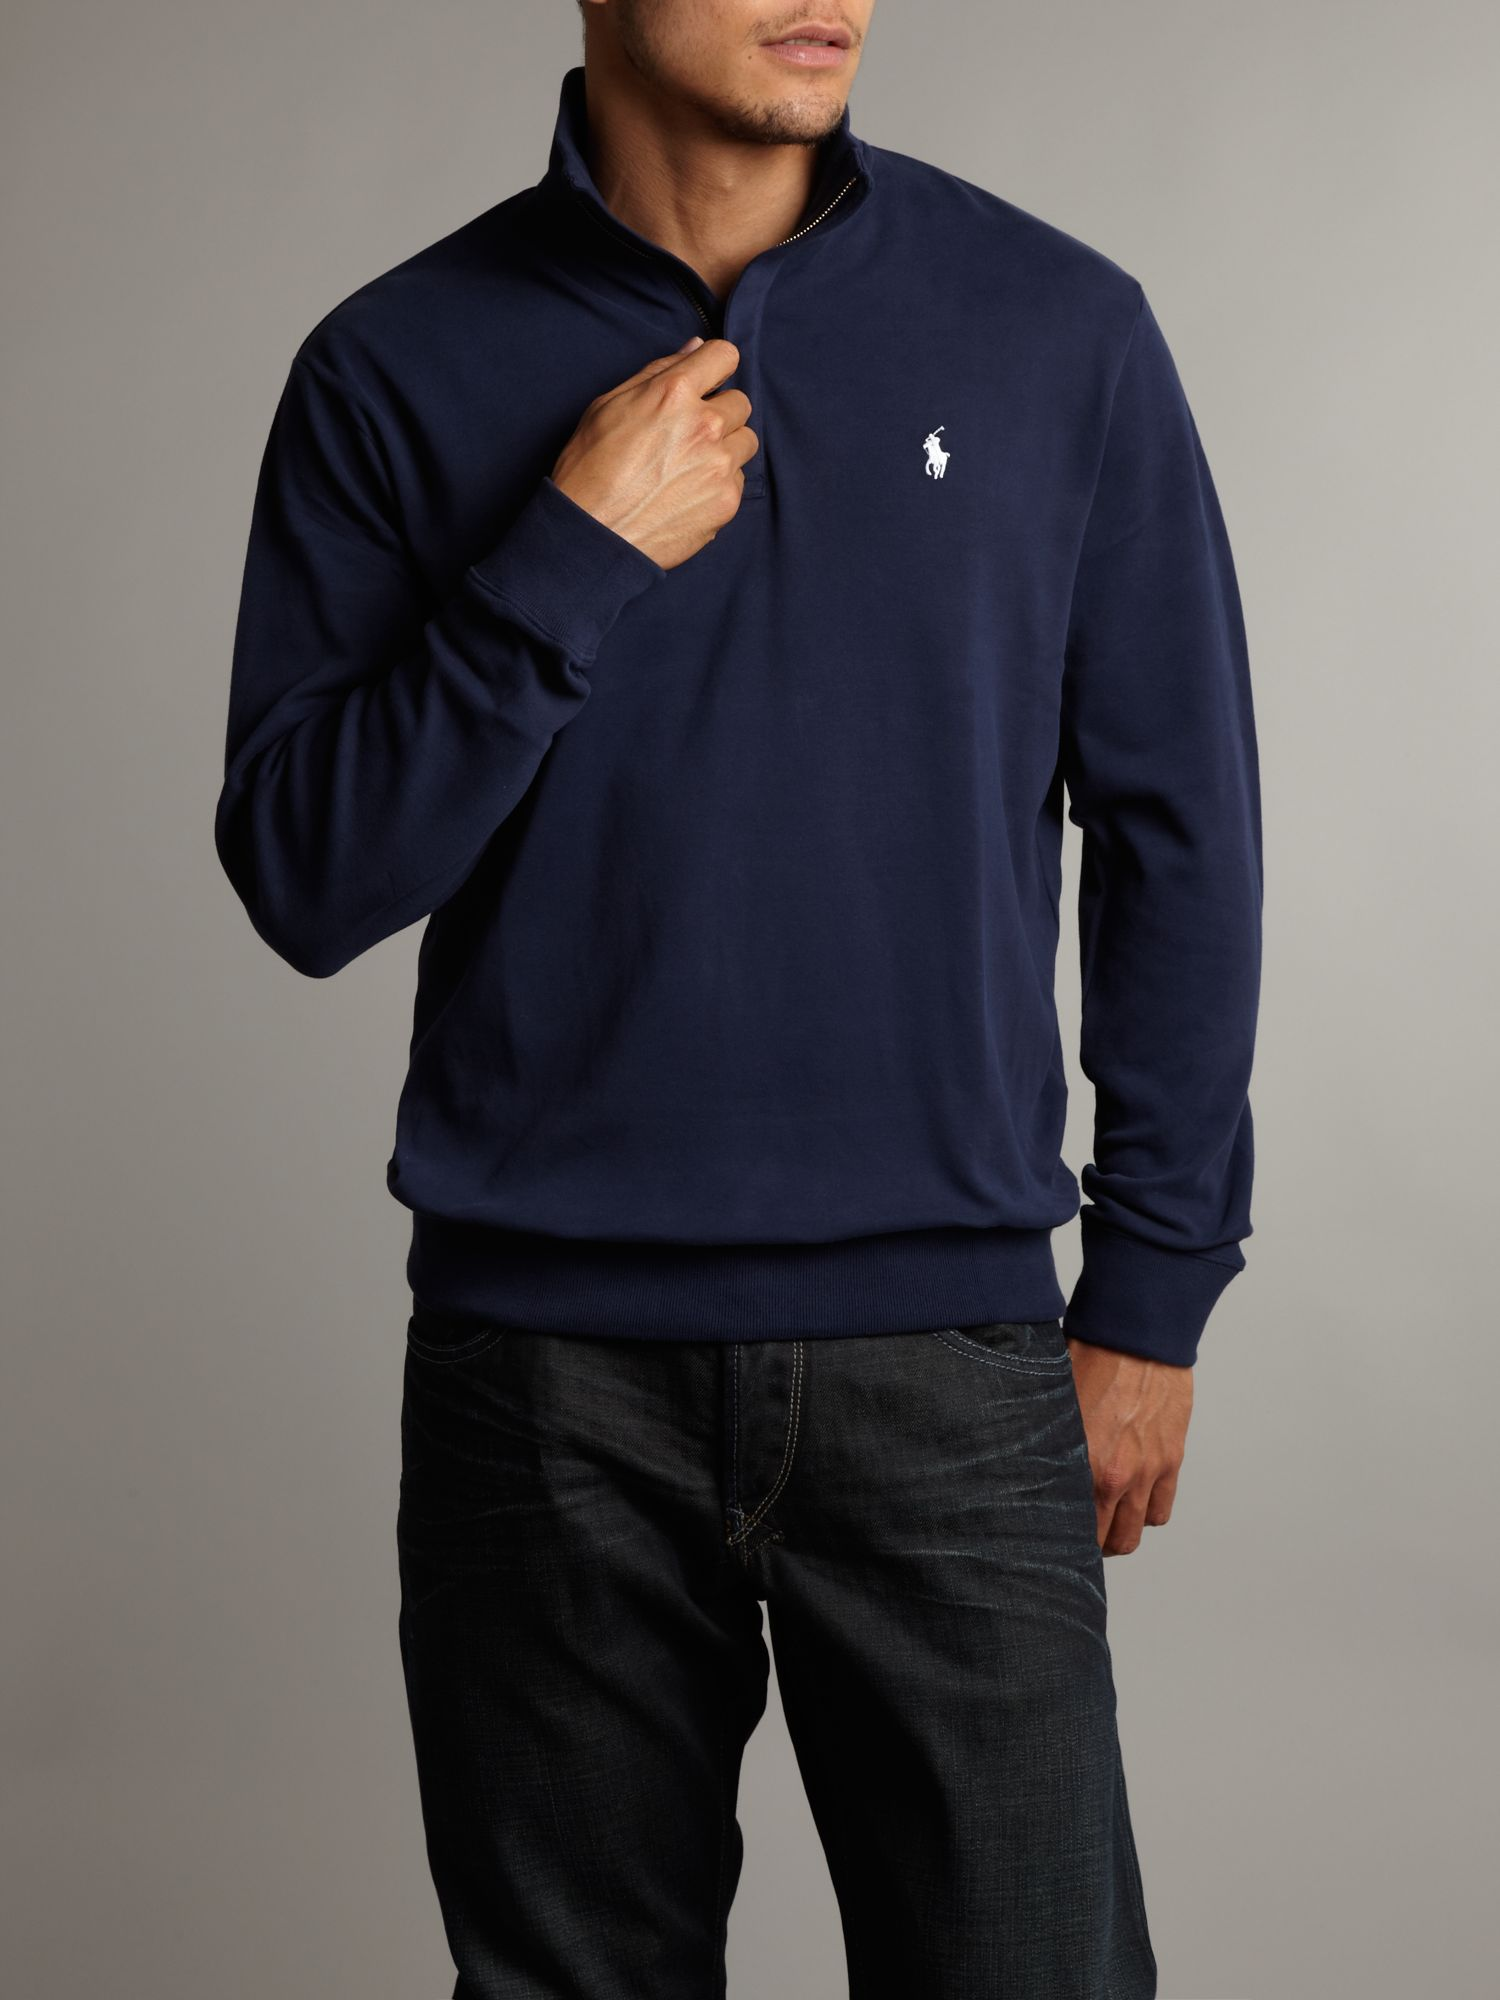 Ralph lauren golf Half Zip Sweatshirt in Blue for Men | Lyst